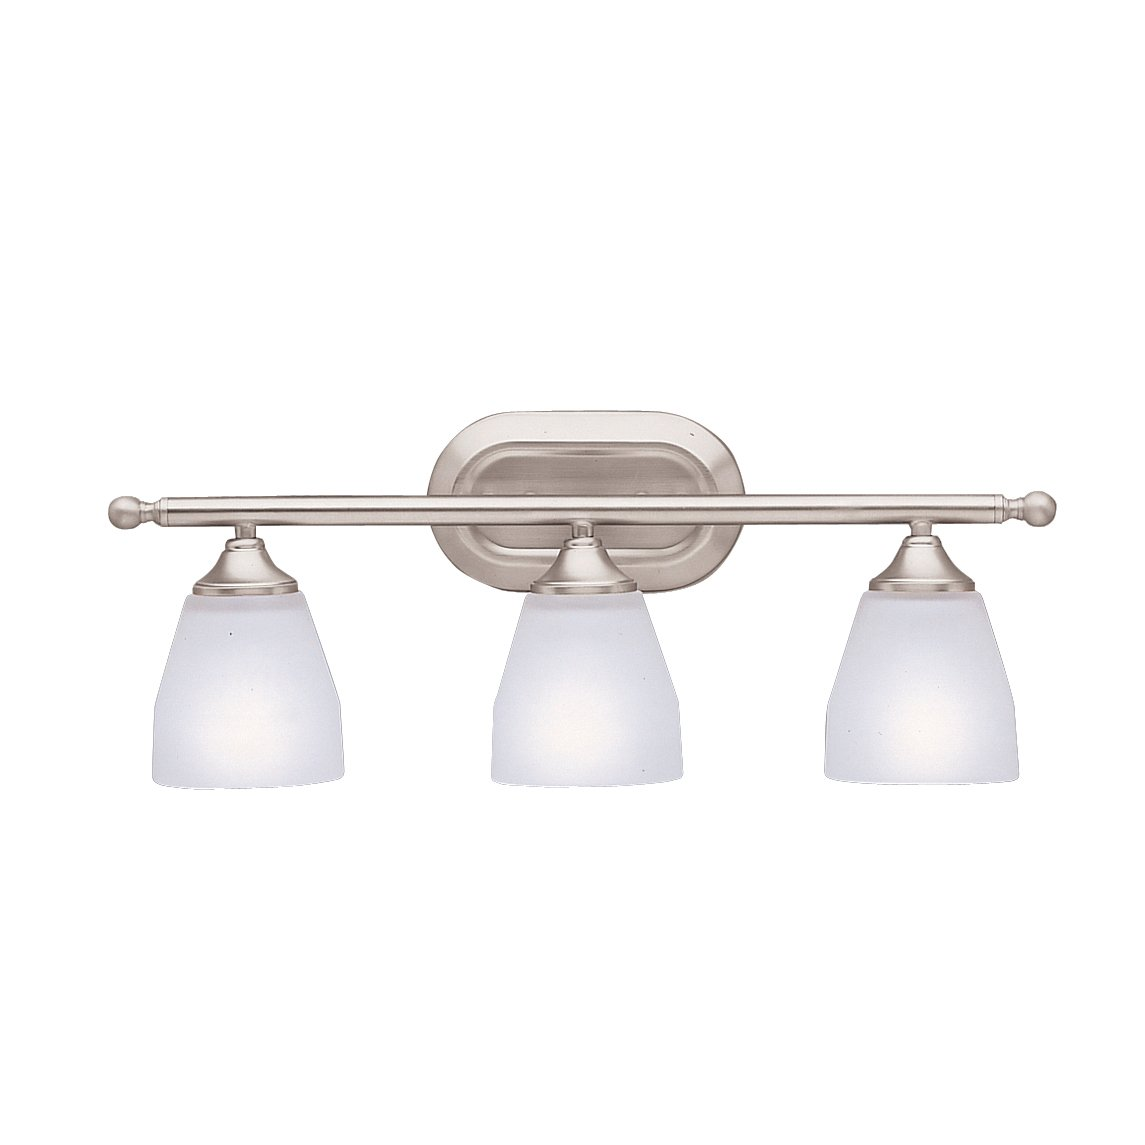 free shipping Kichler Lighting 5448NI Ansonia 3-Light Bath Fixture, Brushed Nickel with Satin-Etched Glass